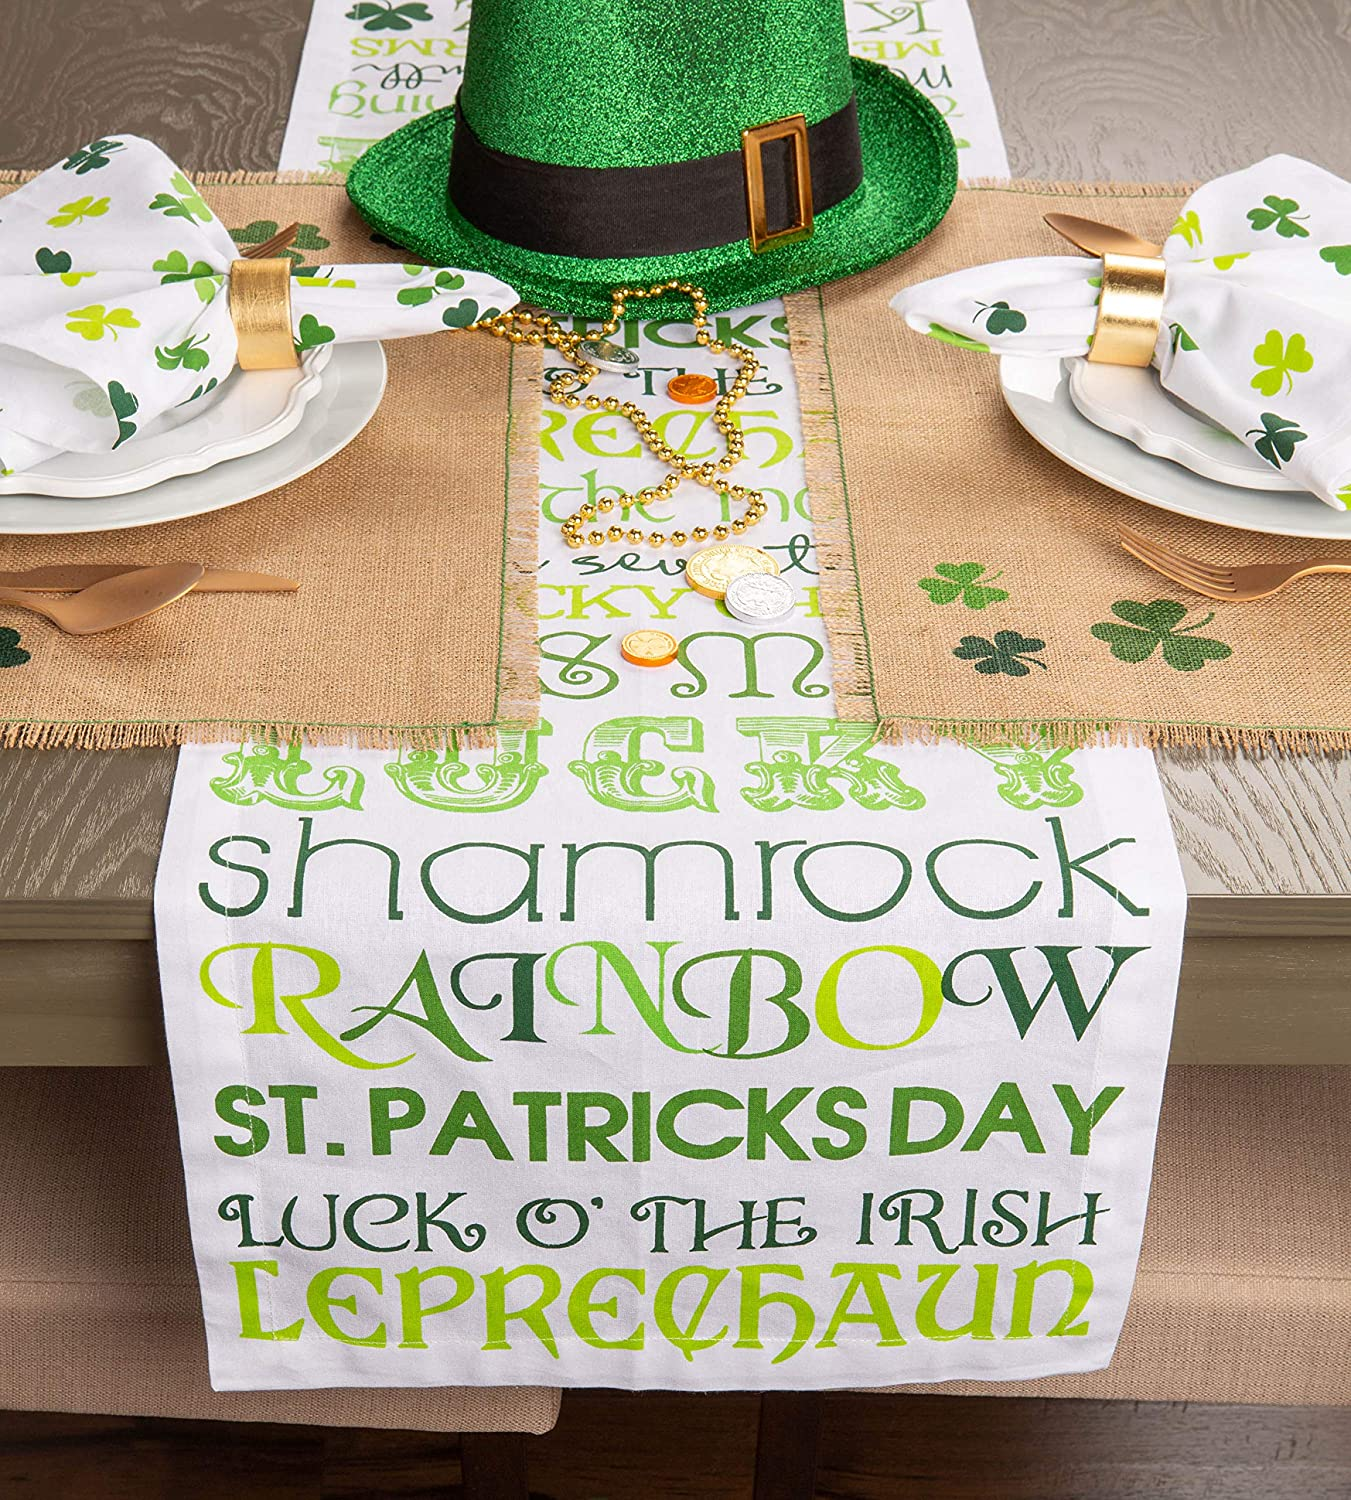 Decorative Oversized Embroidered Kitchen Towels Perfect Home and Kitchen Gift-St Patricks Day 18x28 Set of 3 Perfect Home and Kitchen Gift-St Patrick/'s Day CAMZ33678 18x28 Set of 3 DII Cotton Holiday Dish Towels